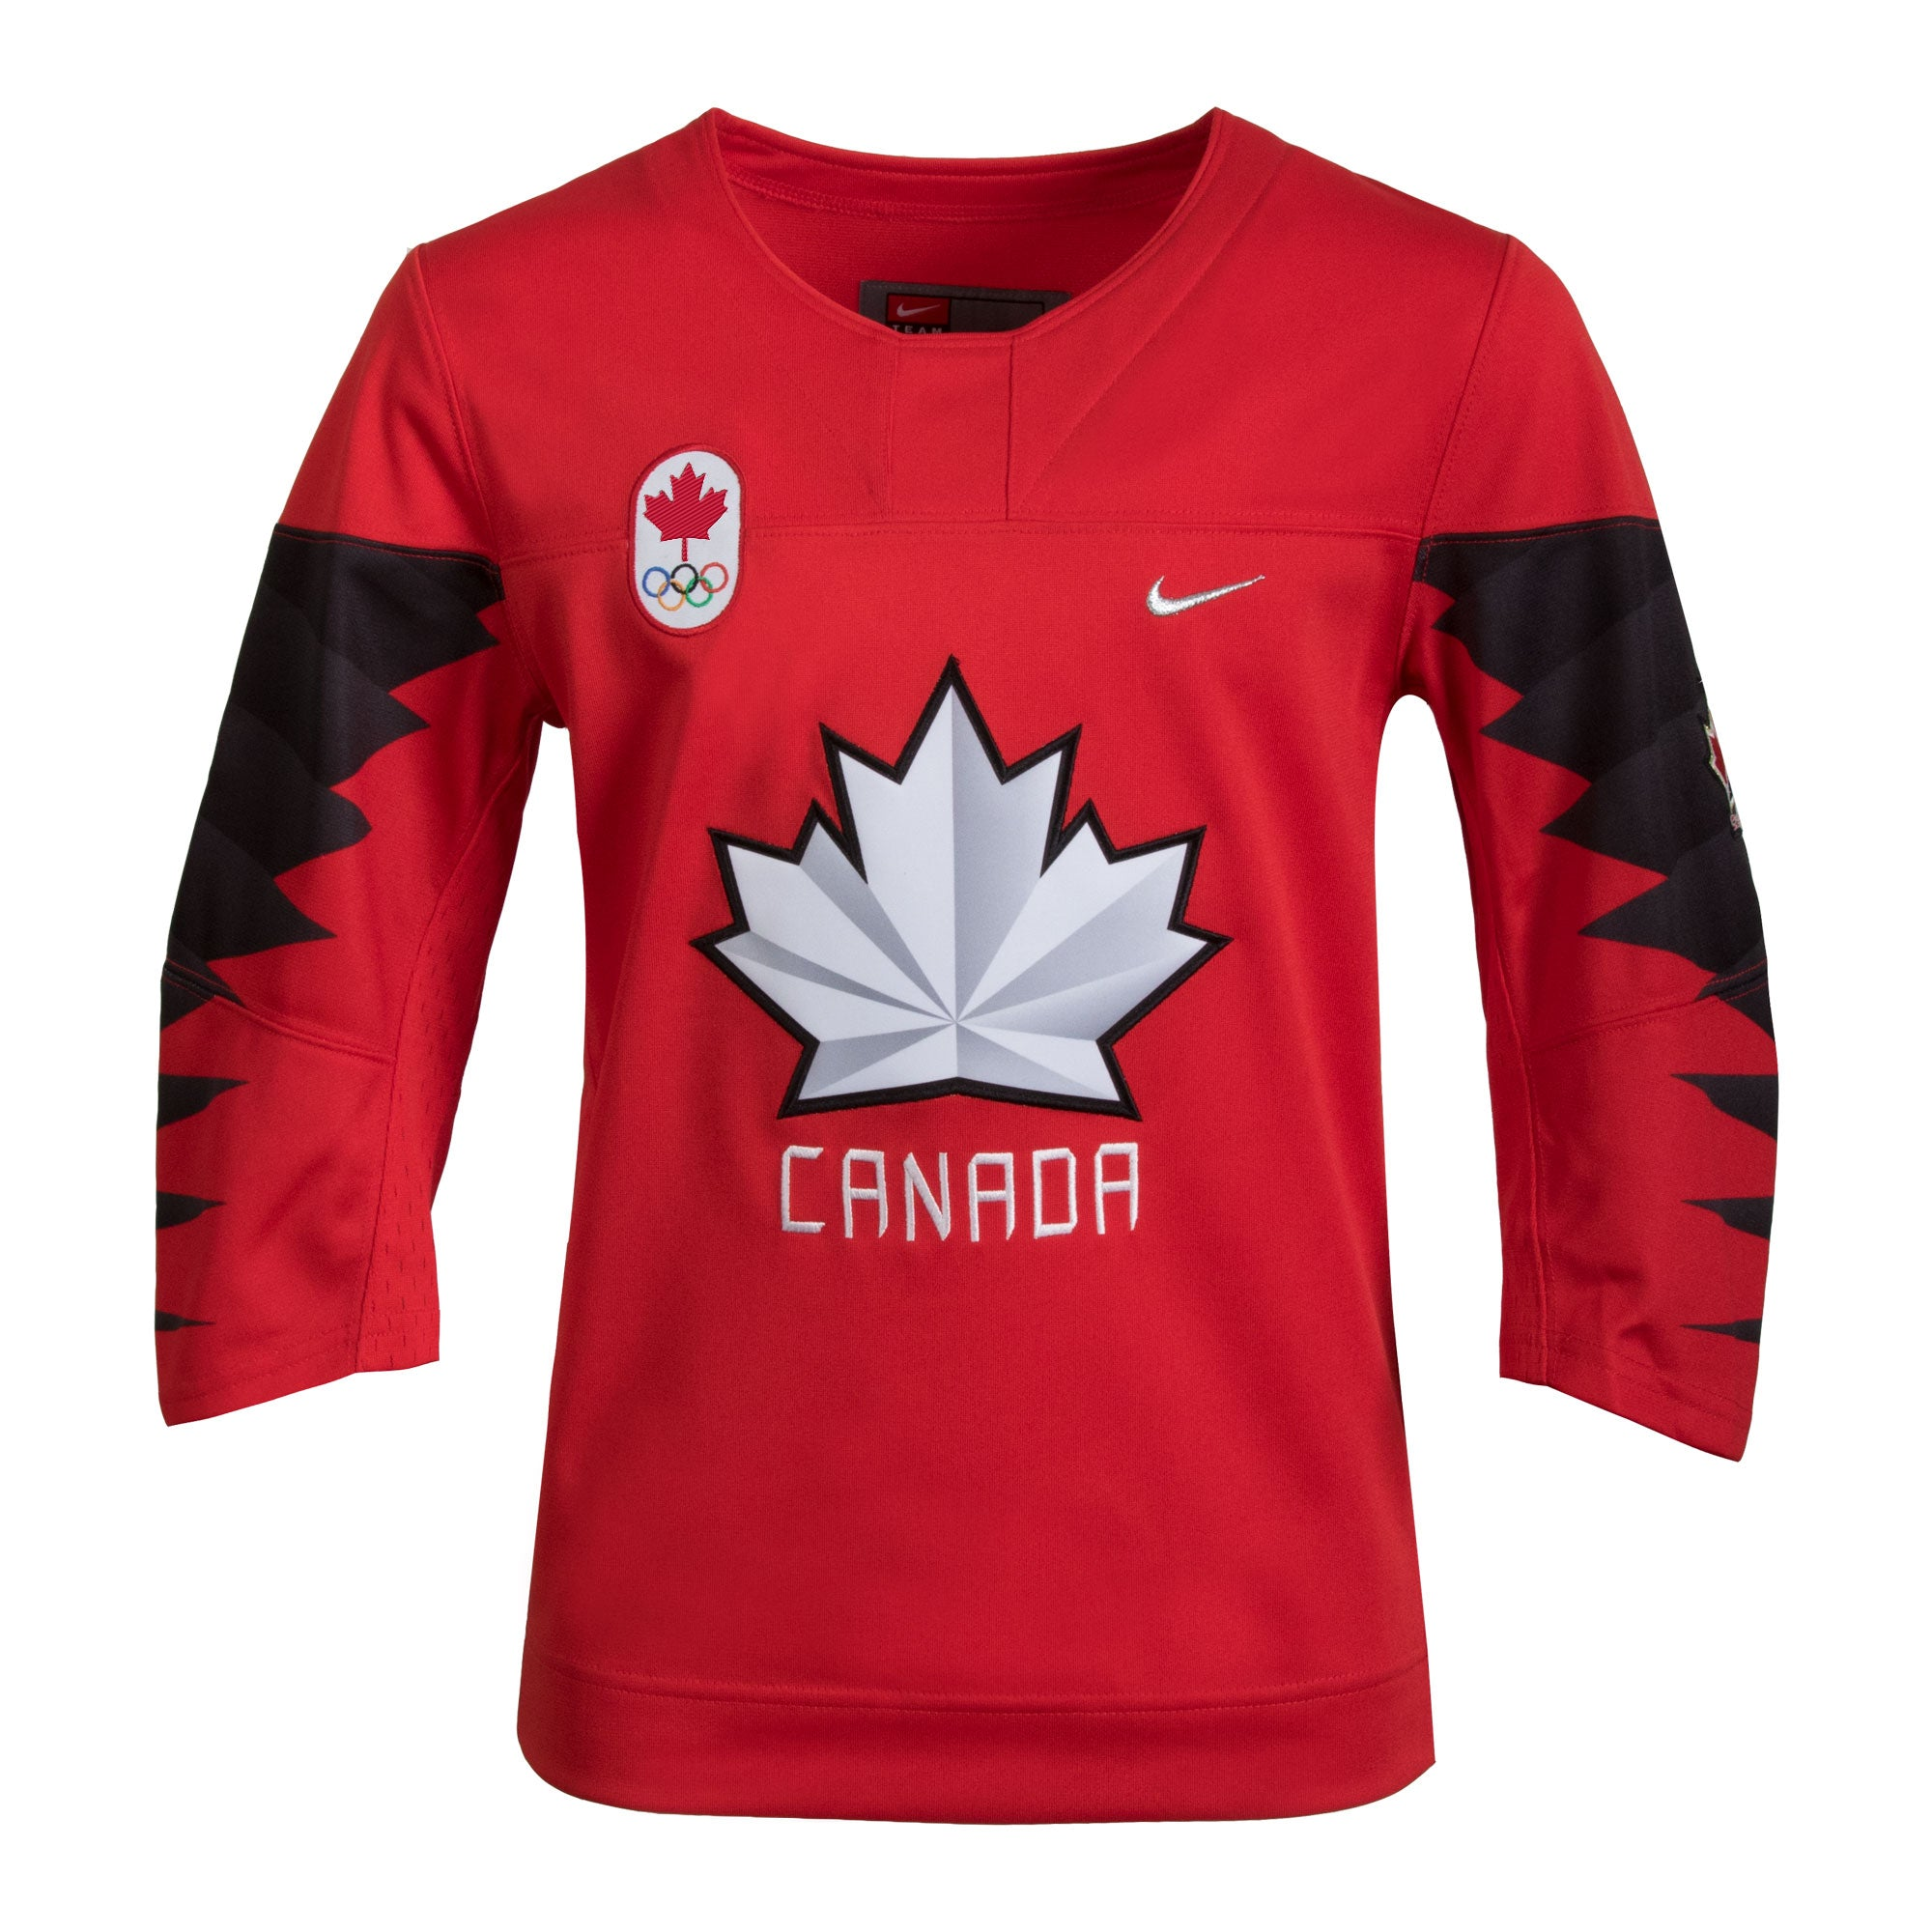 2018 Team Canada Nike Hockey Olympic Red Replica Child Jersey - Multiple  Sizes - Bleacher Bum ...